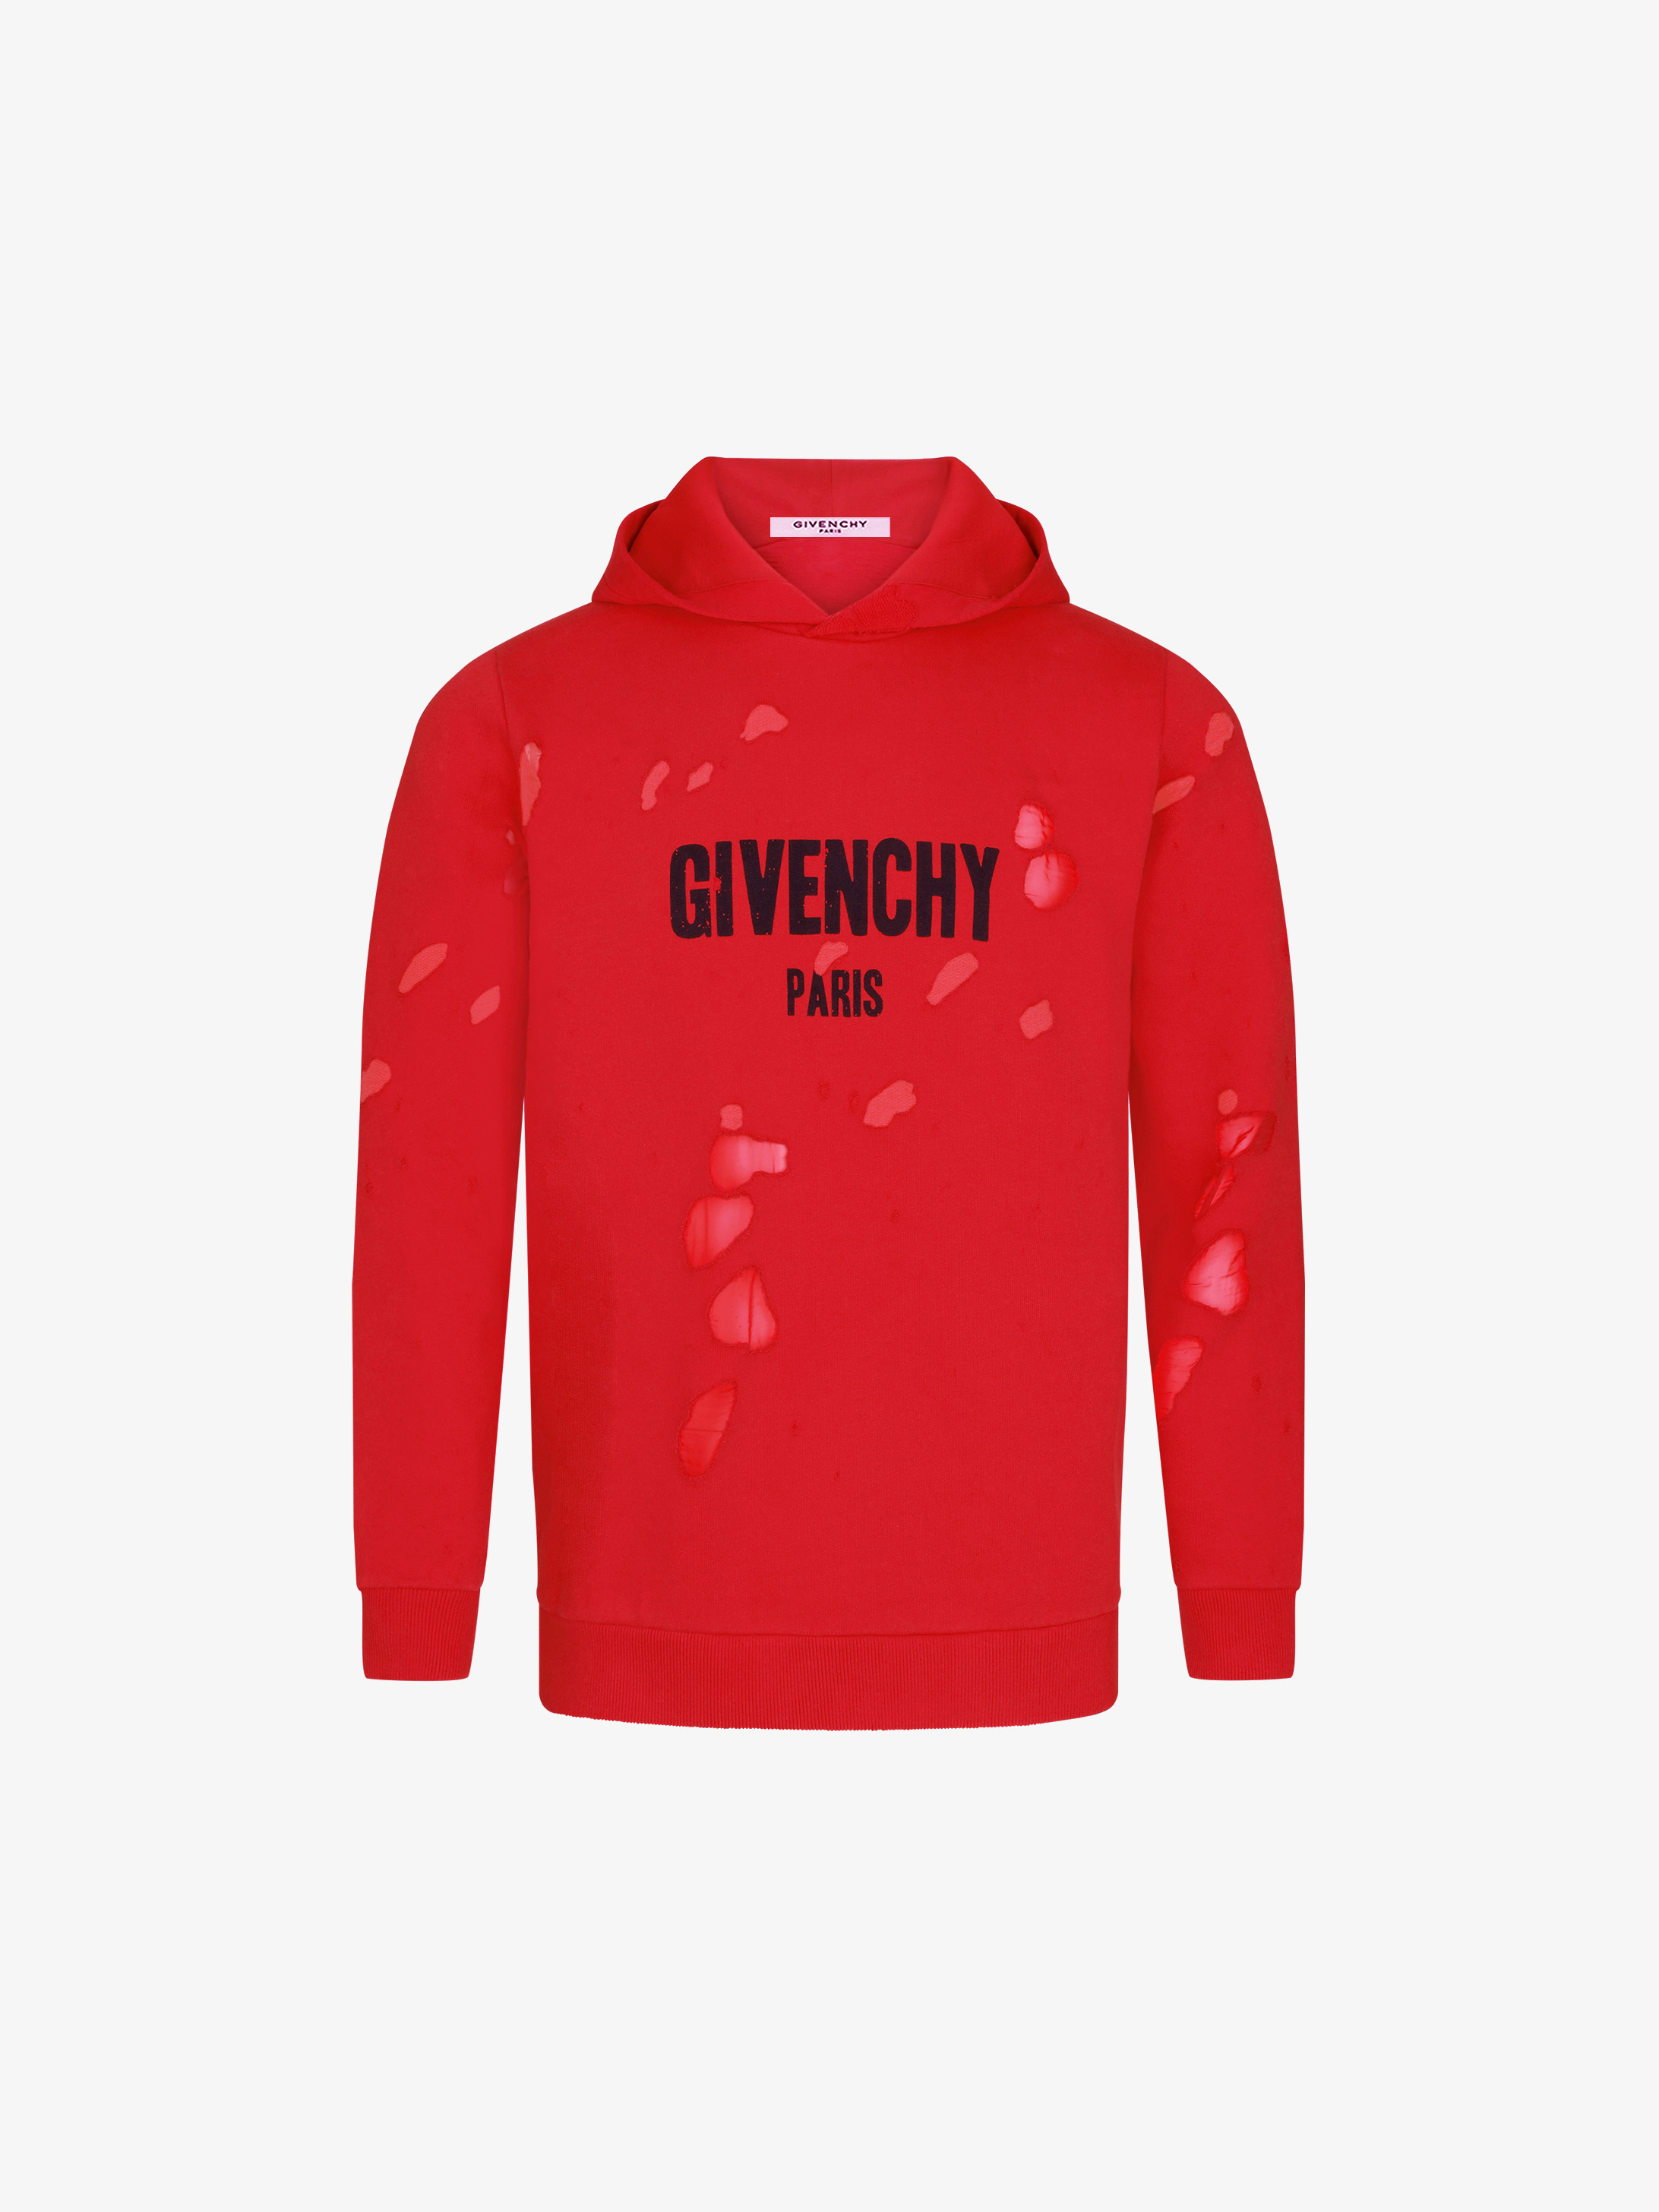 givenchy paris destroyed hoodie givenchy paris. Black Bedroom Furniture Sets. Home Design Ideas